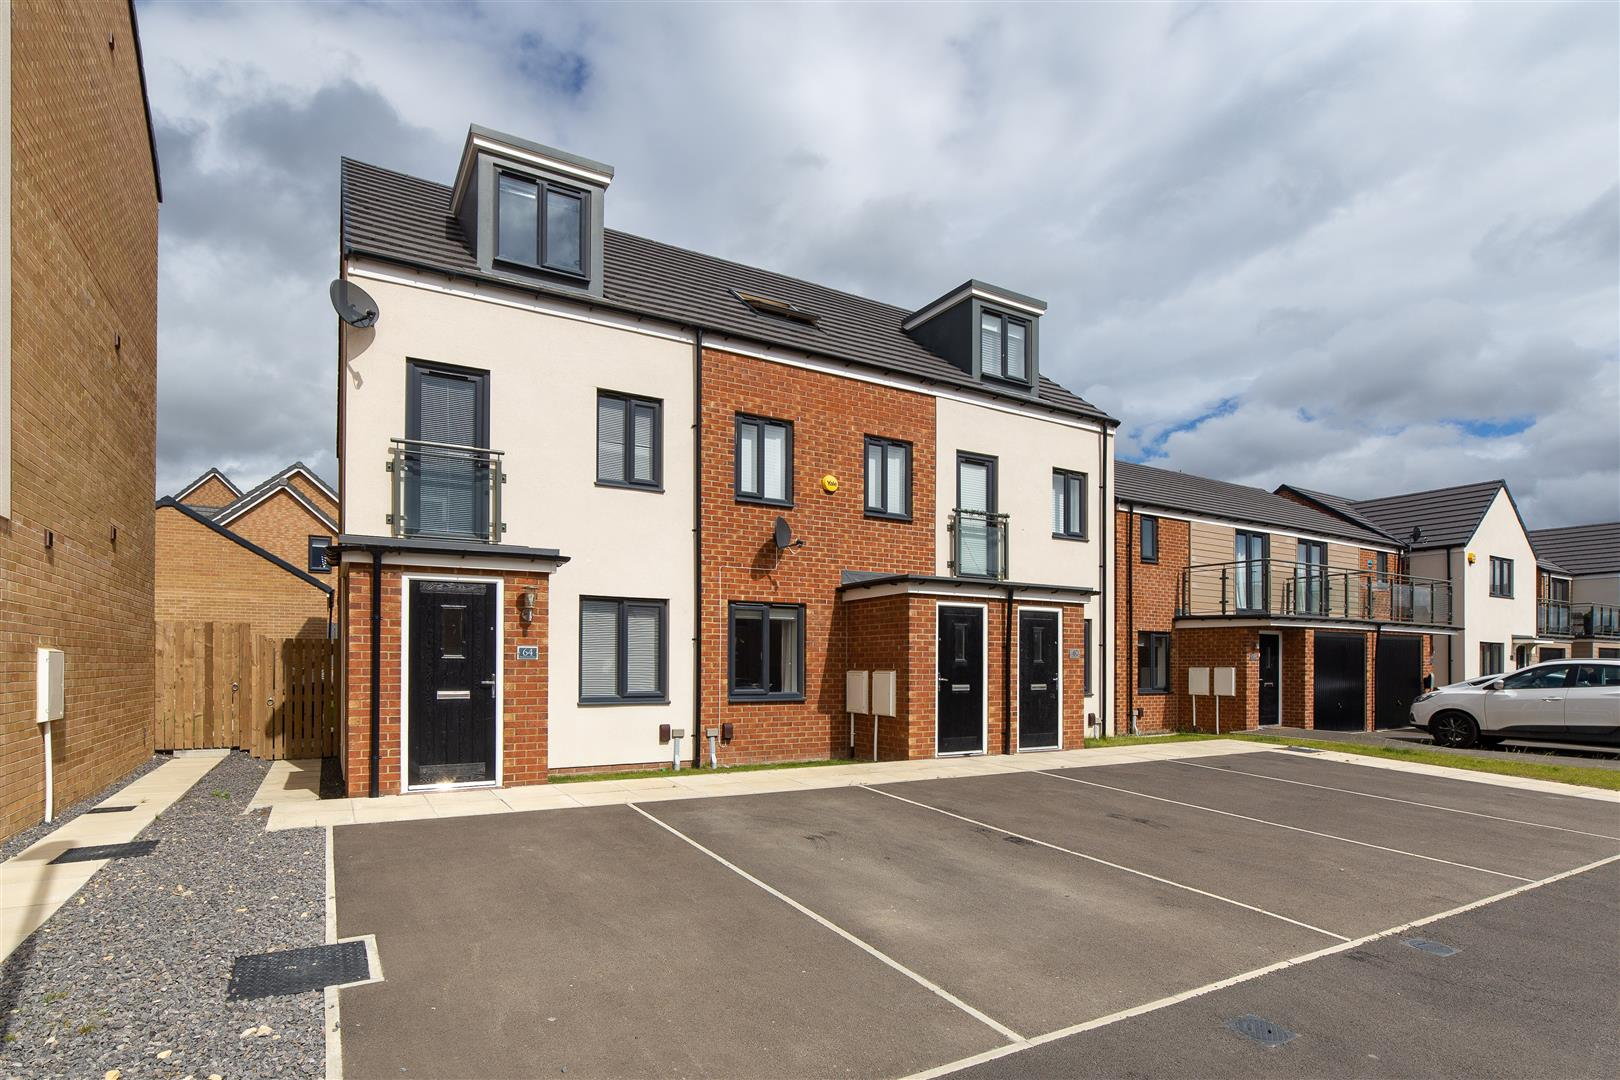 3 bed town house for sale in Orangetip Gardens, Newcastle Upon Tyne - Property Image 1